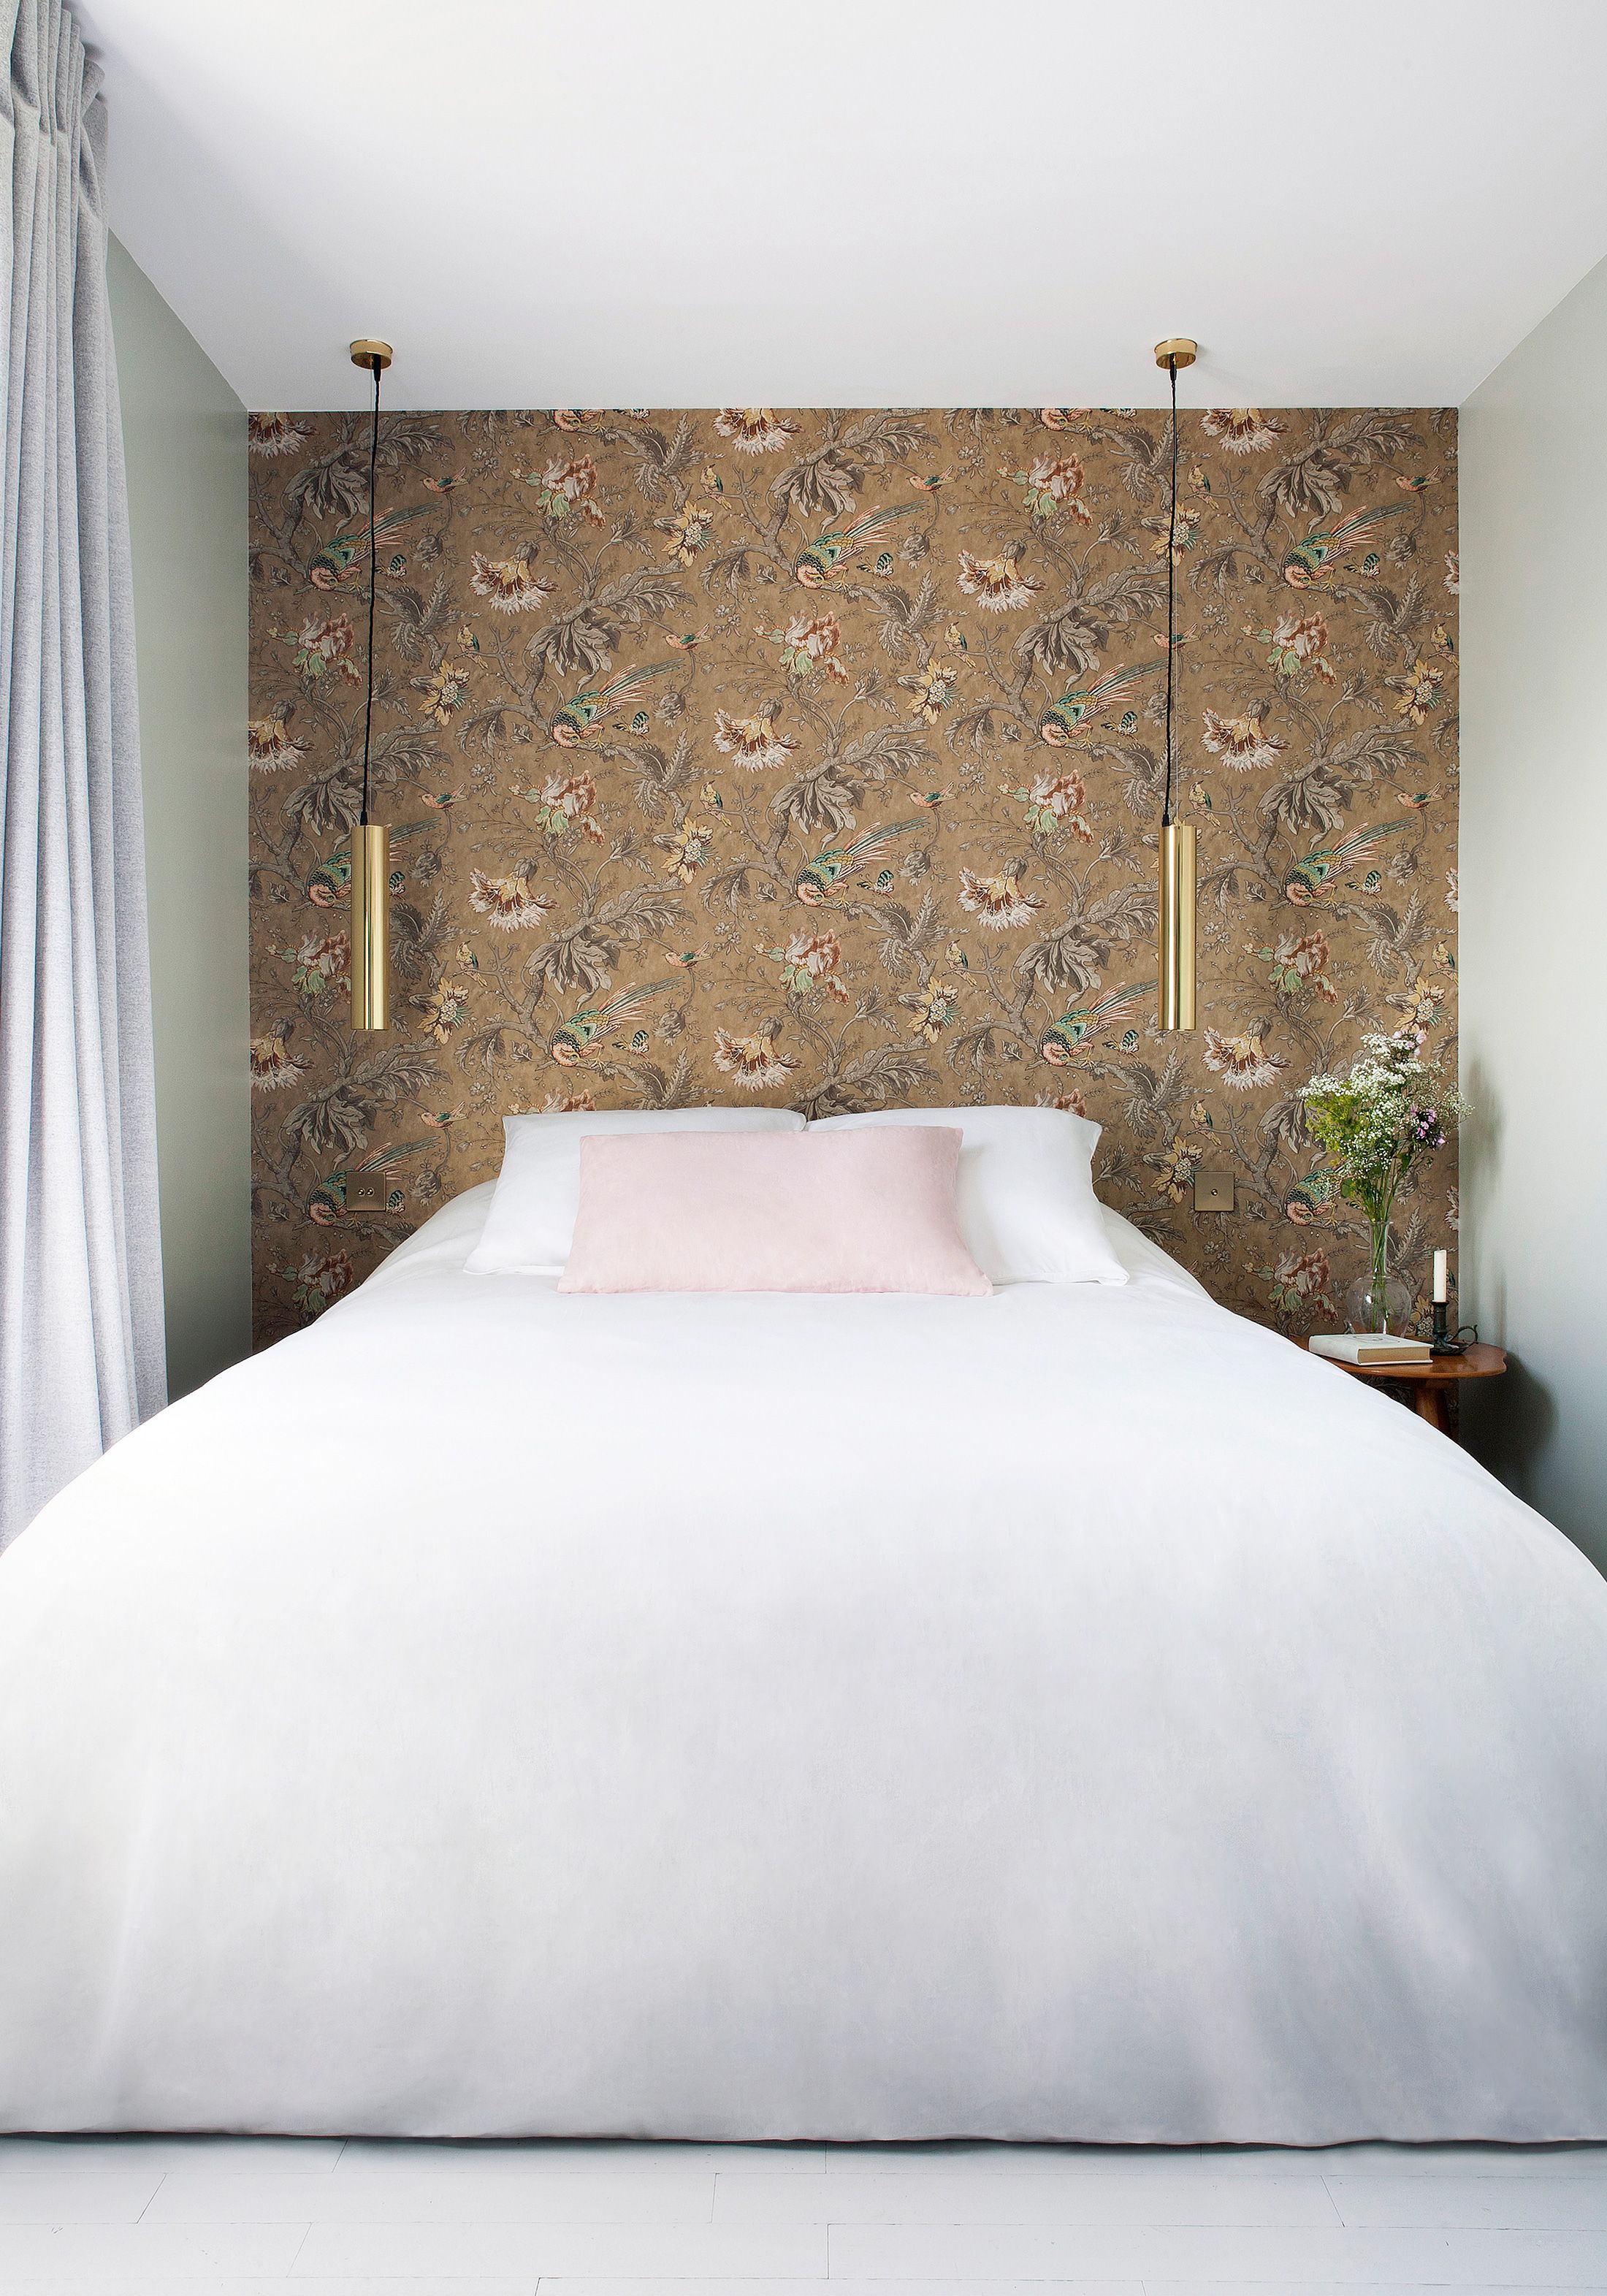 Every bedroom design is different, and if you are looking for bedroom wallpaper ideas or inspiration, look no further. 27 Bold Bedroom Wallpaper Ideas We Love Timeless Bedroom Decorating Ideas